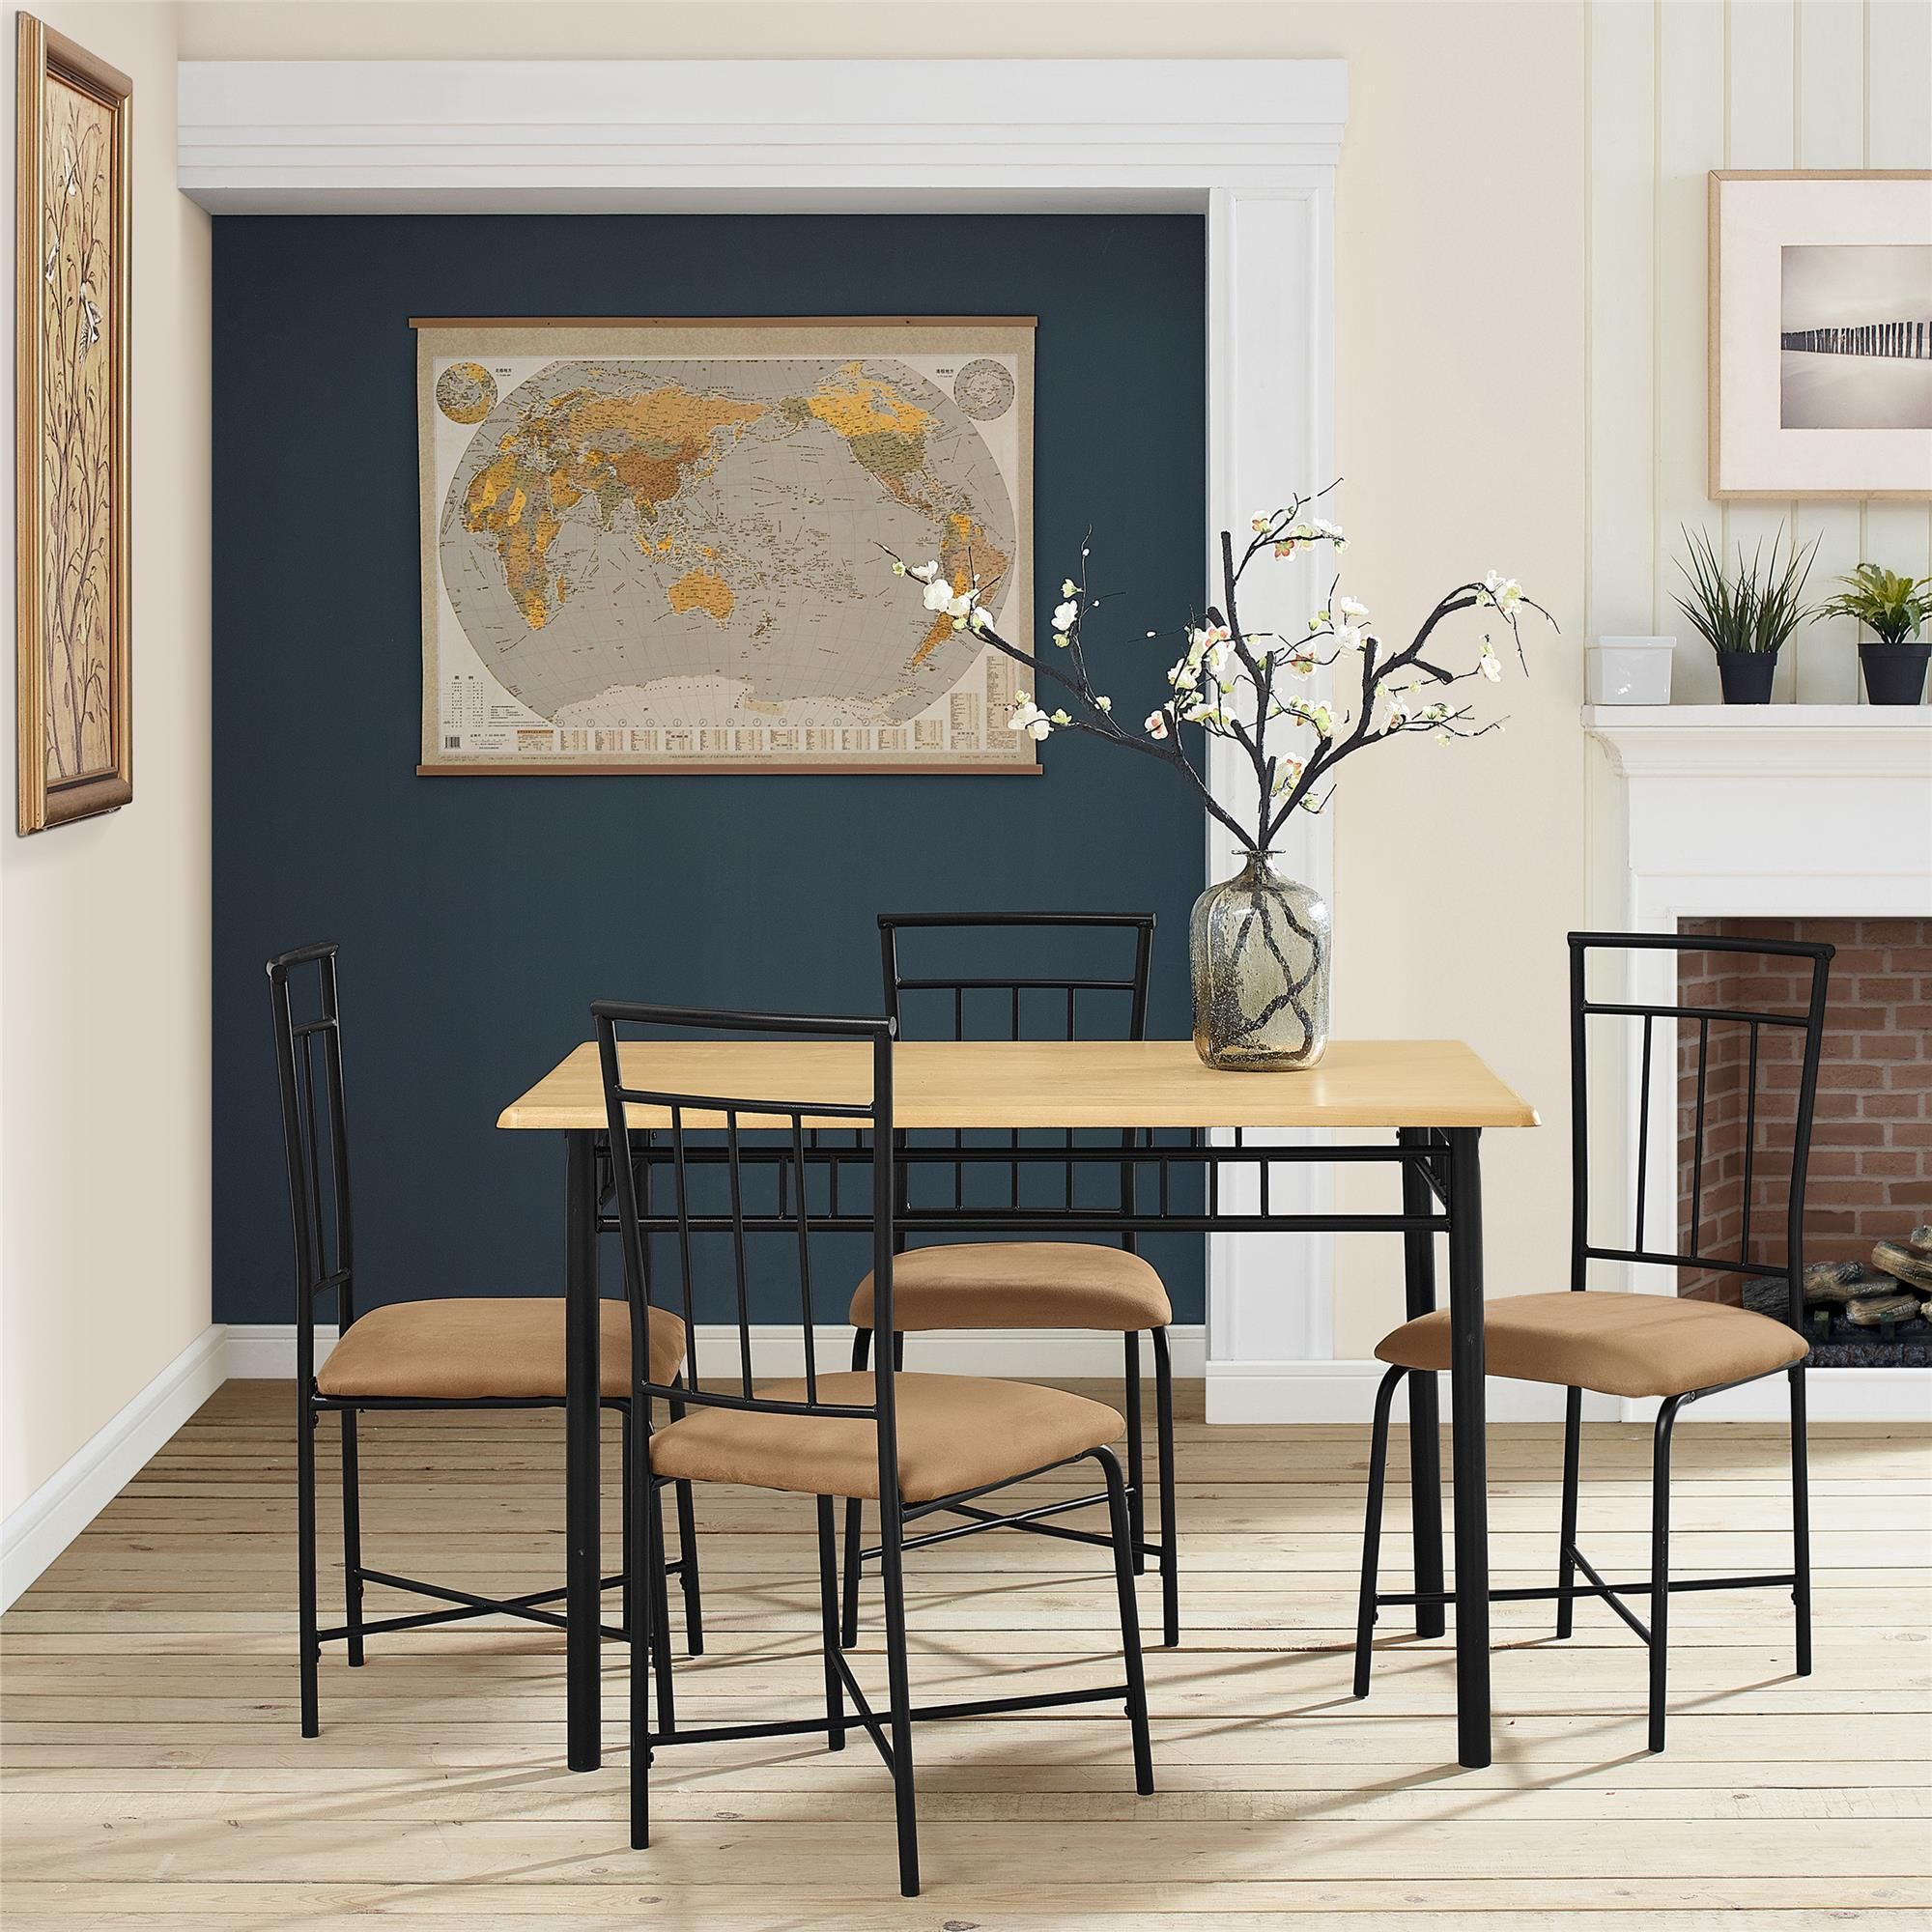 Get The Low Down Before You Do Any Furniture Ping Of Your Own My First Apartment Purchases Prices And Product Reviews